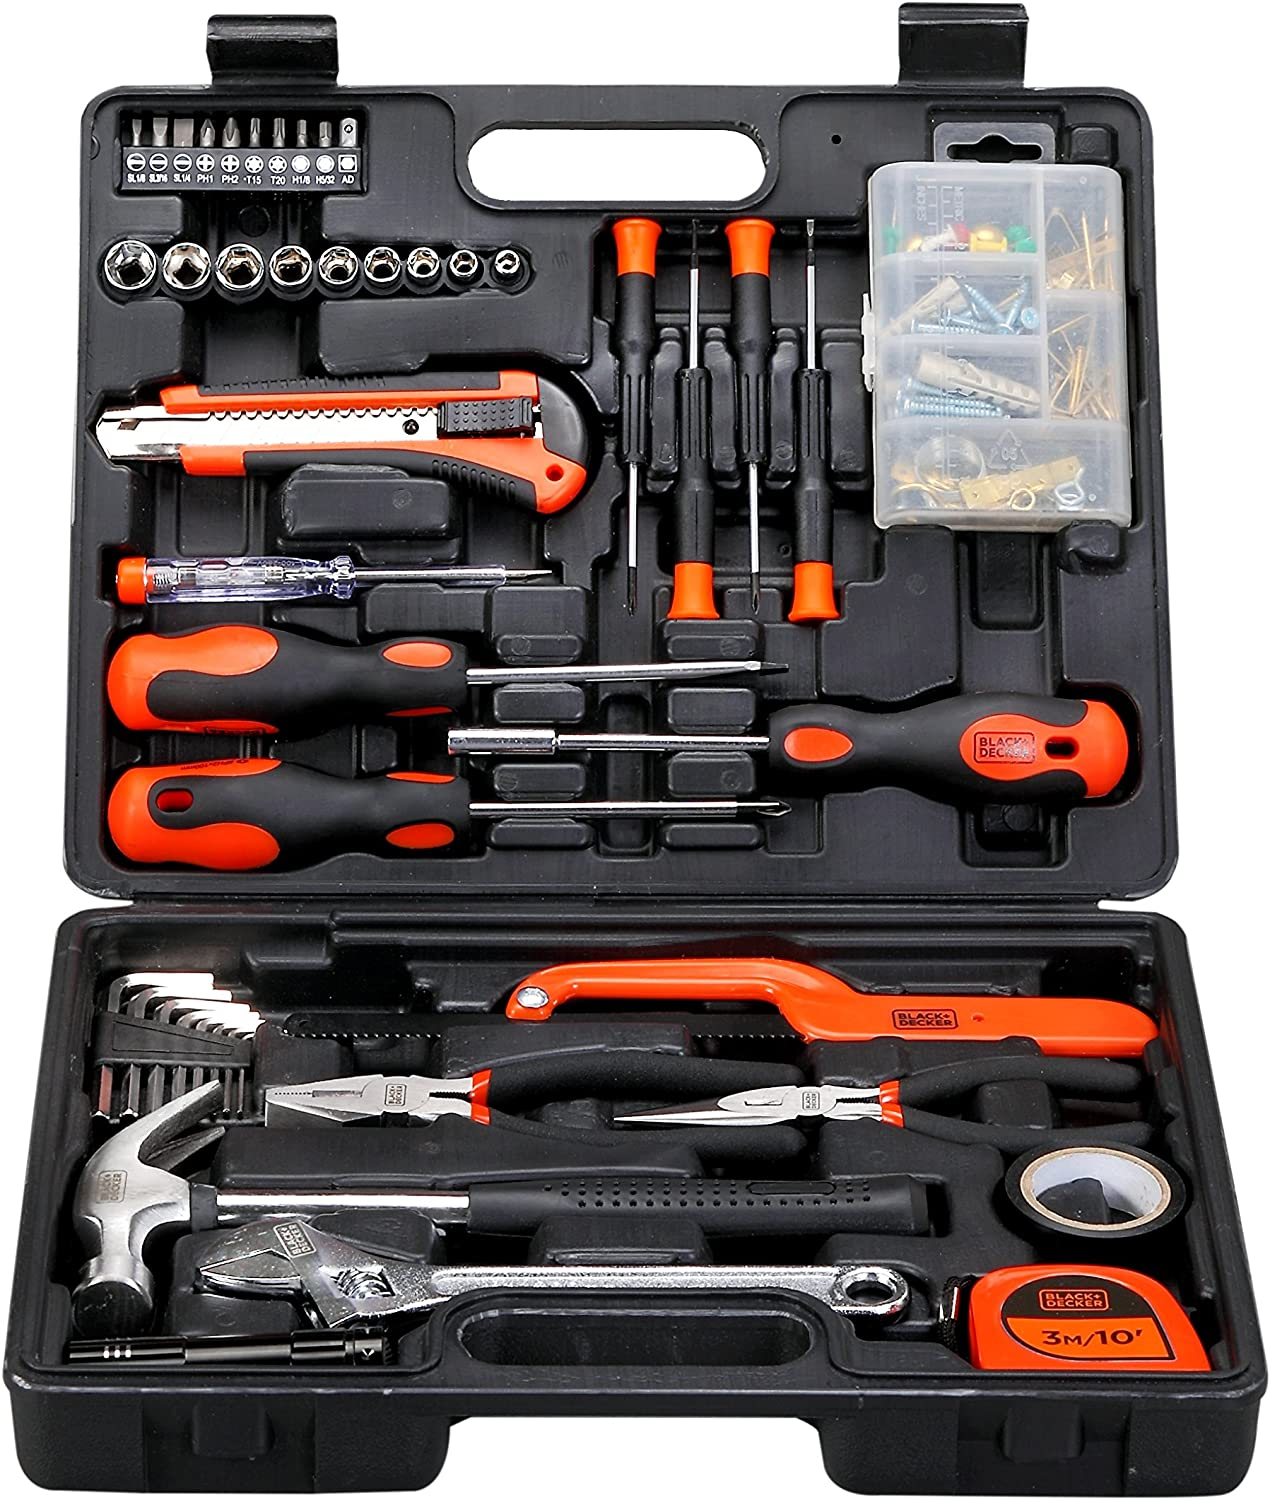 Black+Decker 126 Pcs Hand Tool Kit for Home DIY & Professional Use, BMT126C